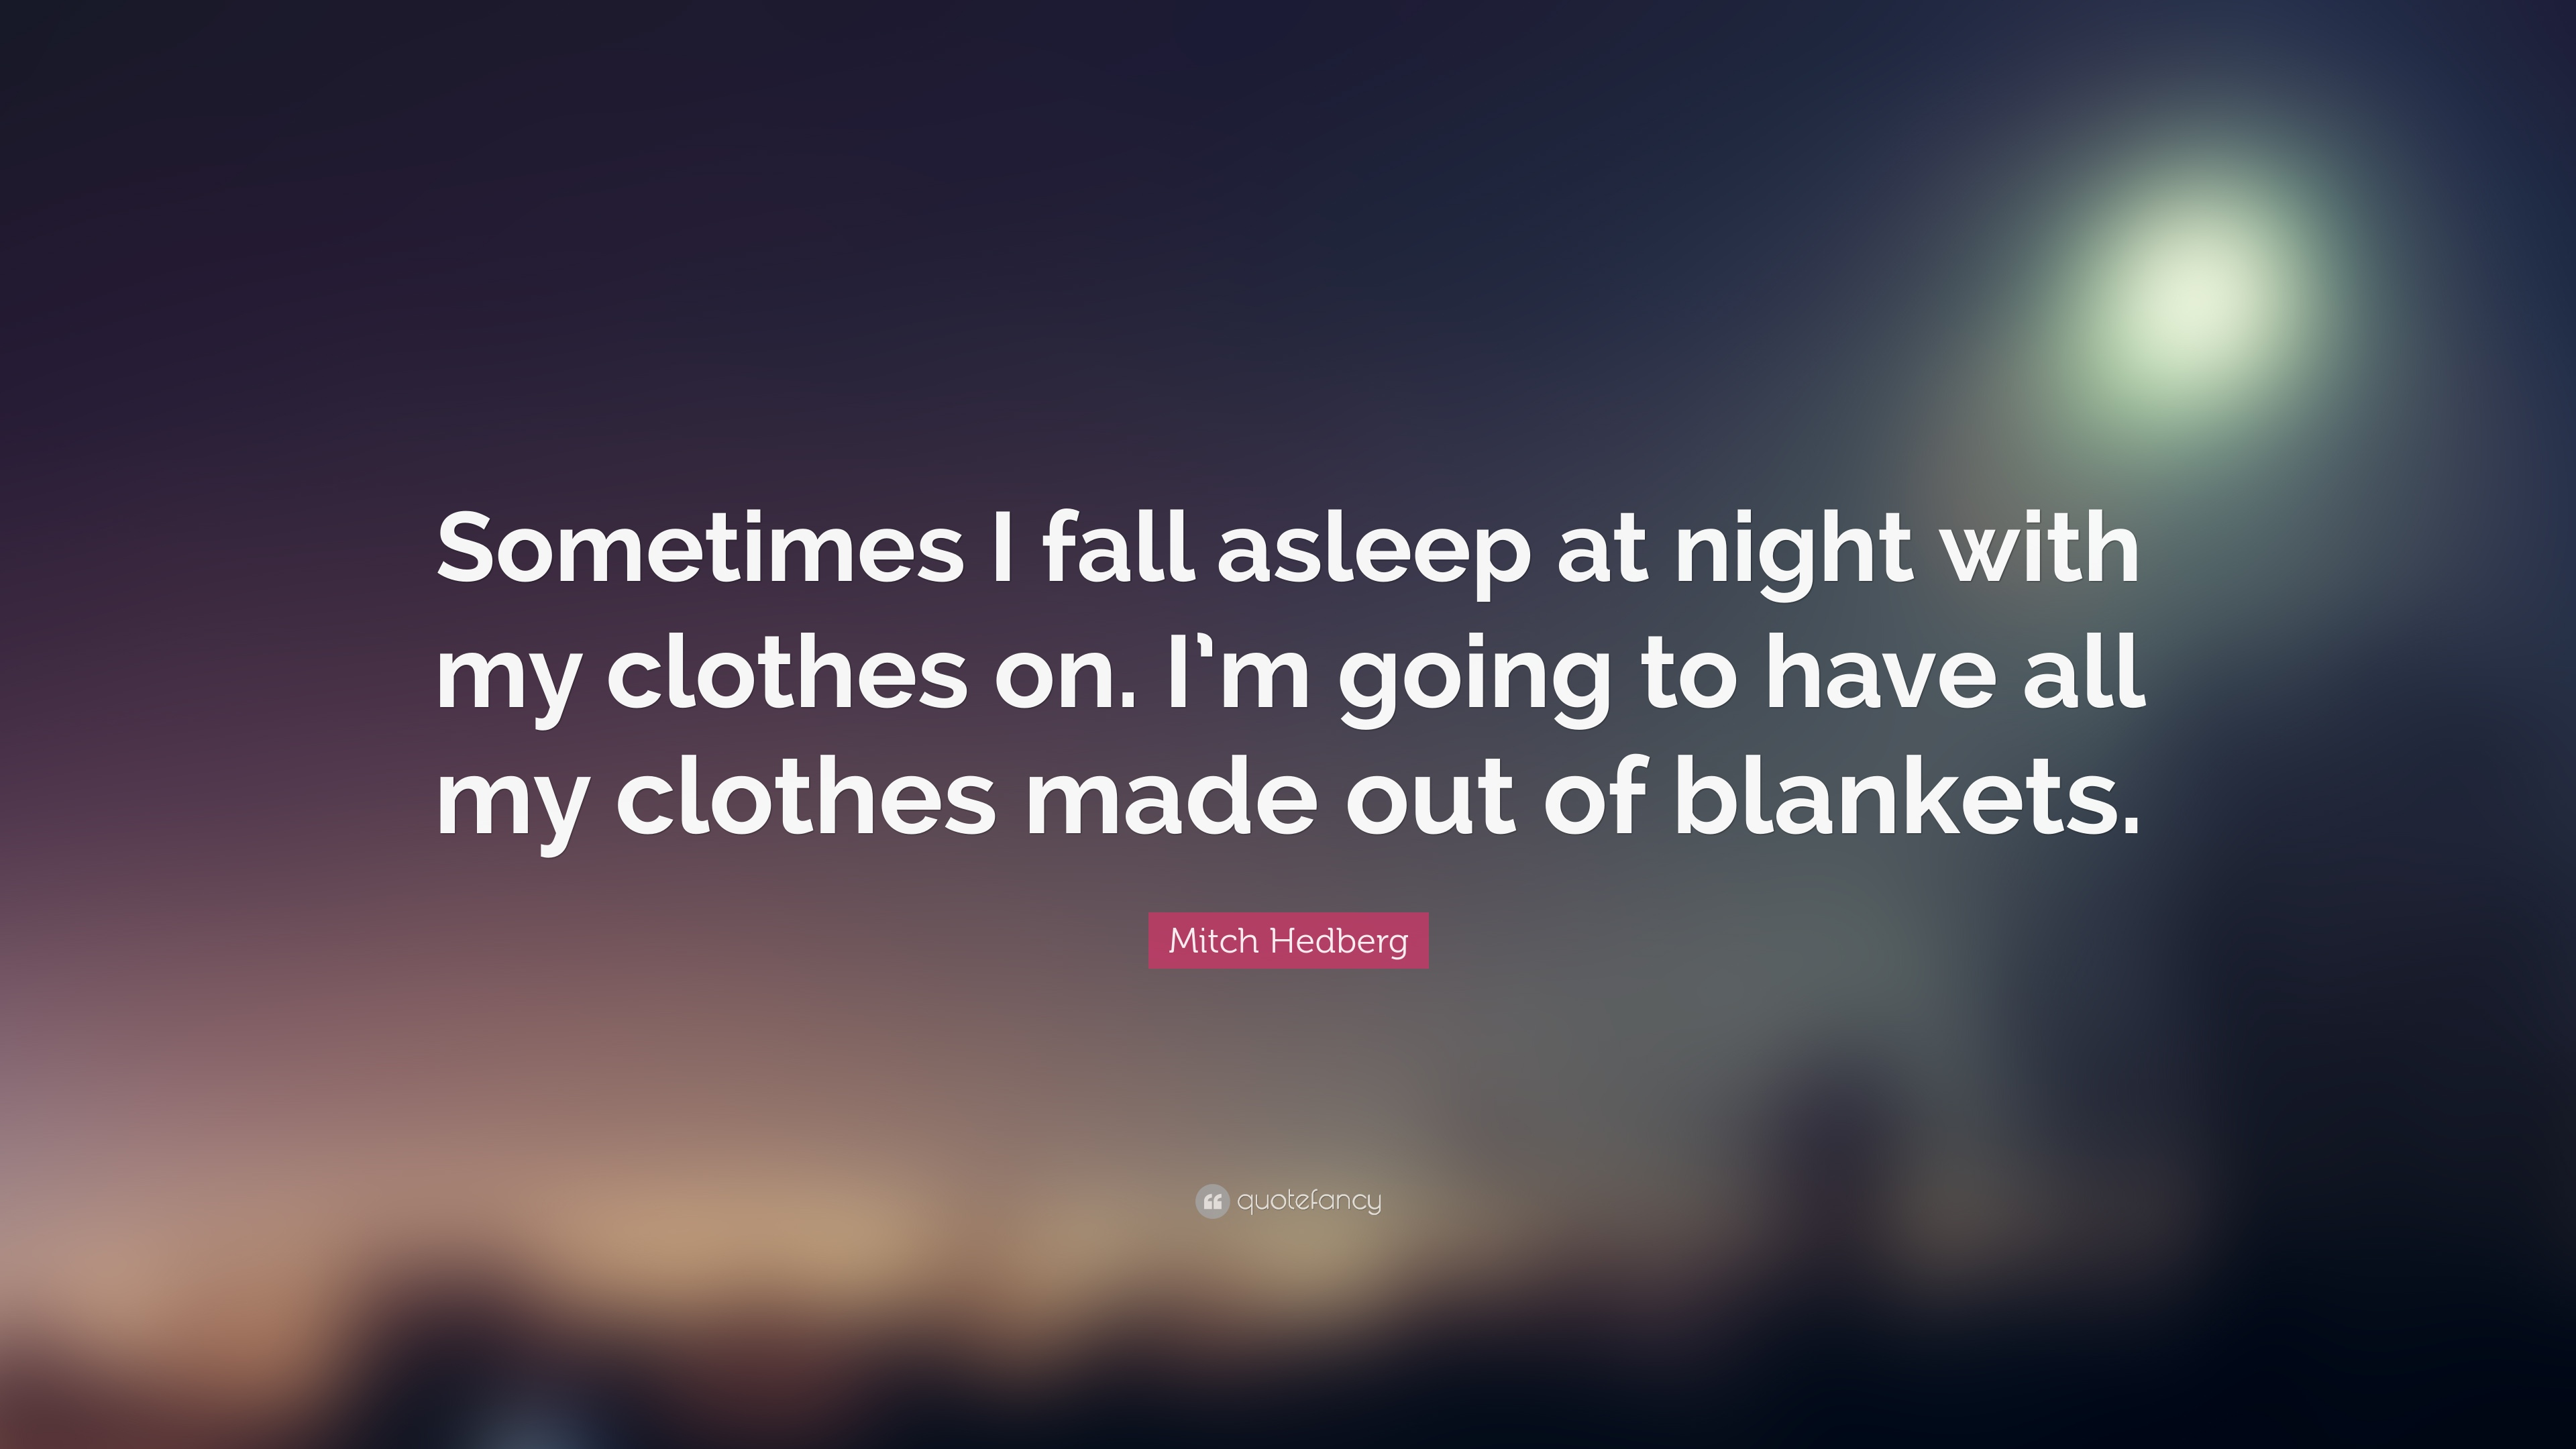 mitch hedberg quote sometimes i fall asleep at night with my